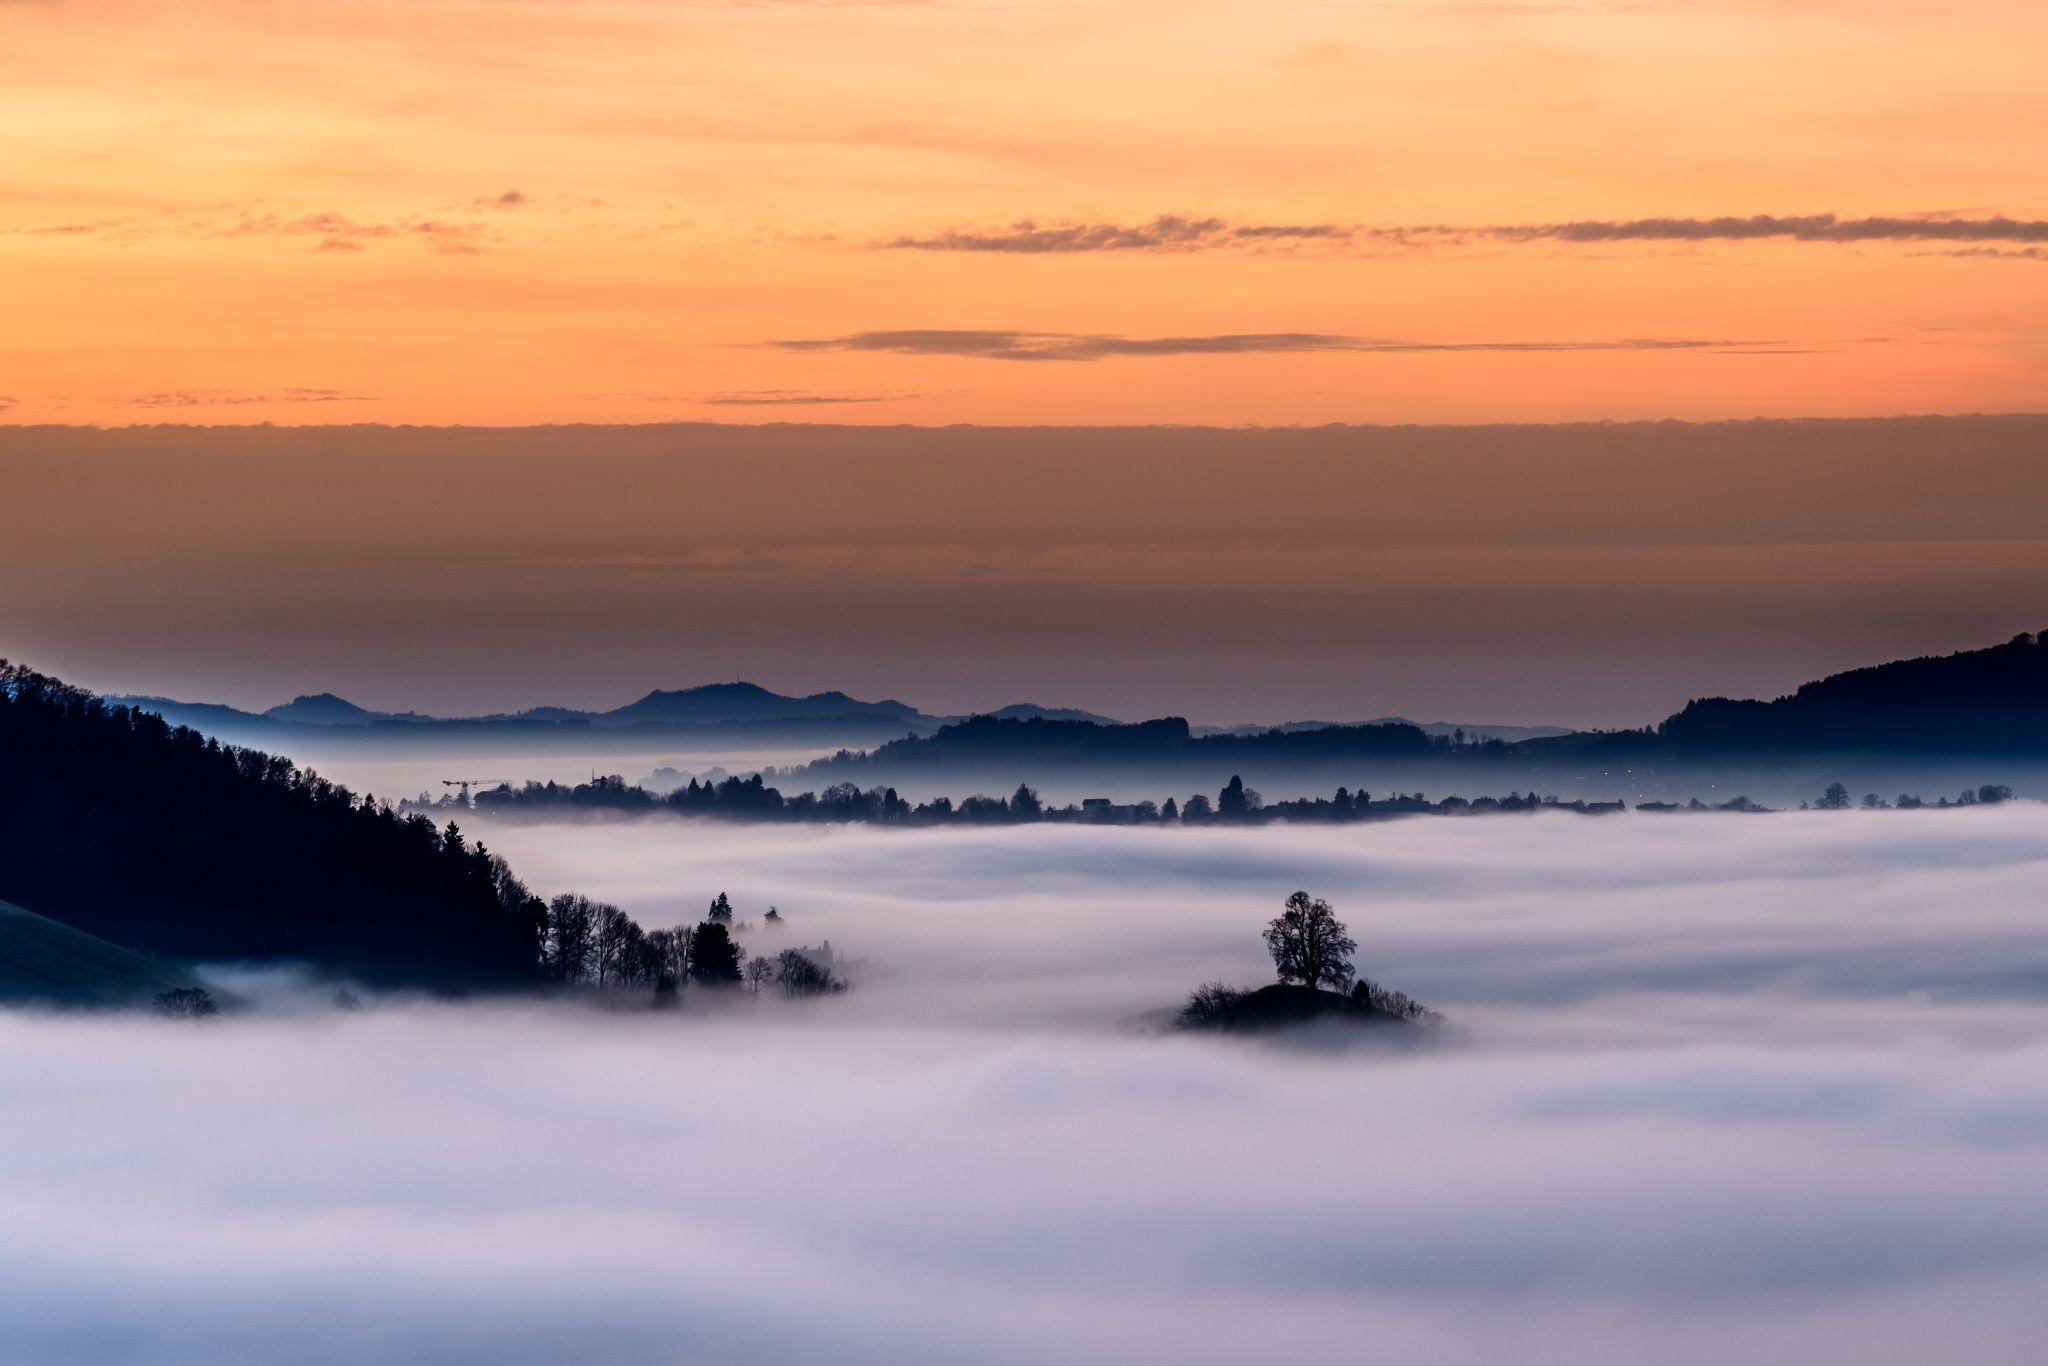 Sunset over the fog by Moreno Ronchi on 500px